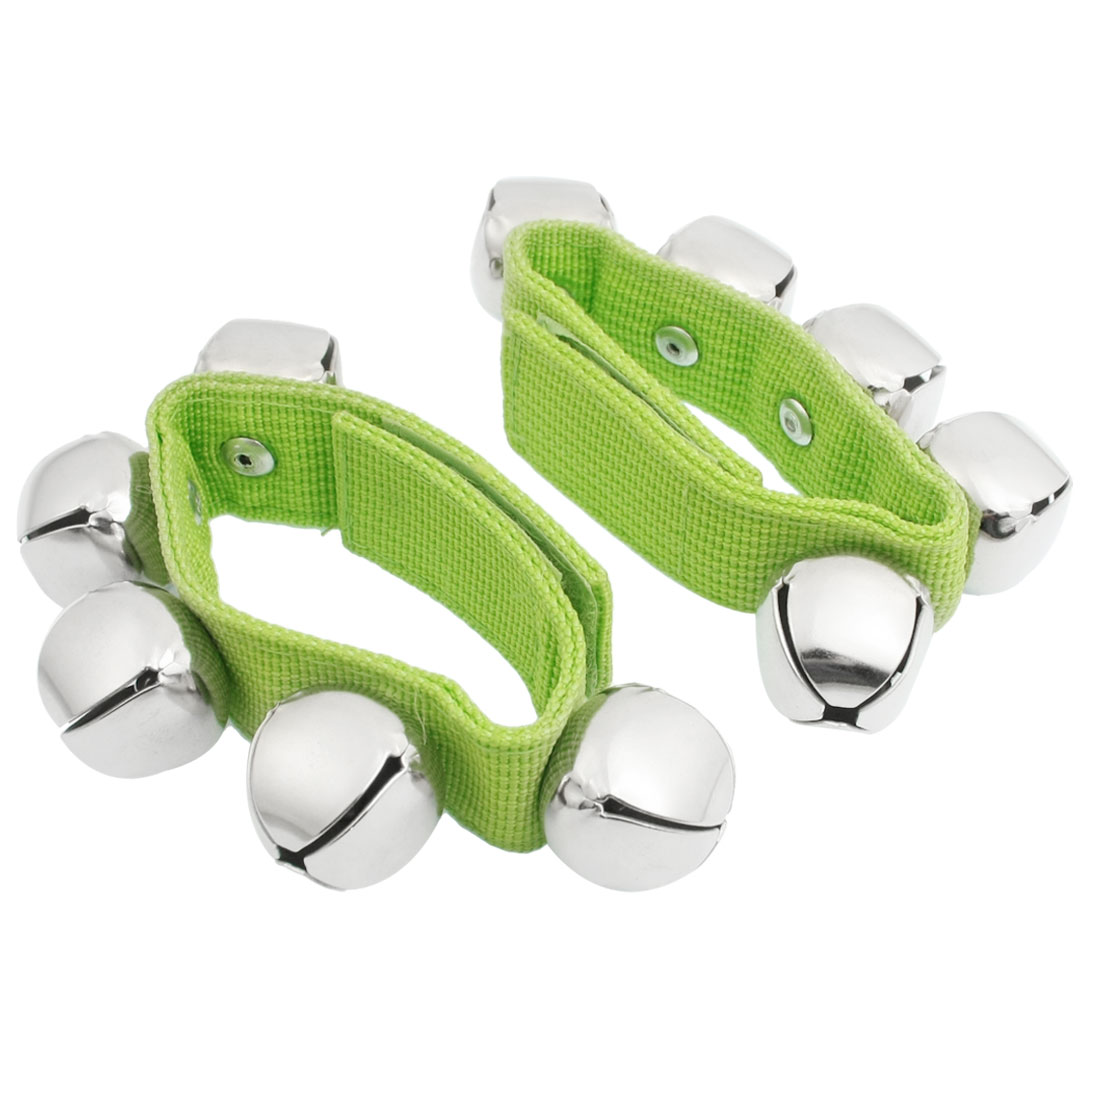 Pair Green Adjustable Band Musical Tambourine Jingling Bells for Xmas Festive